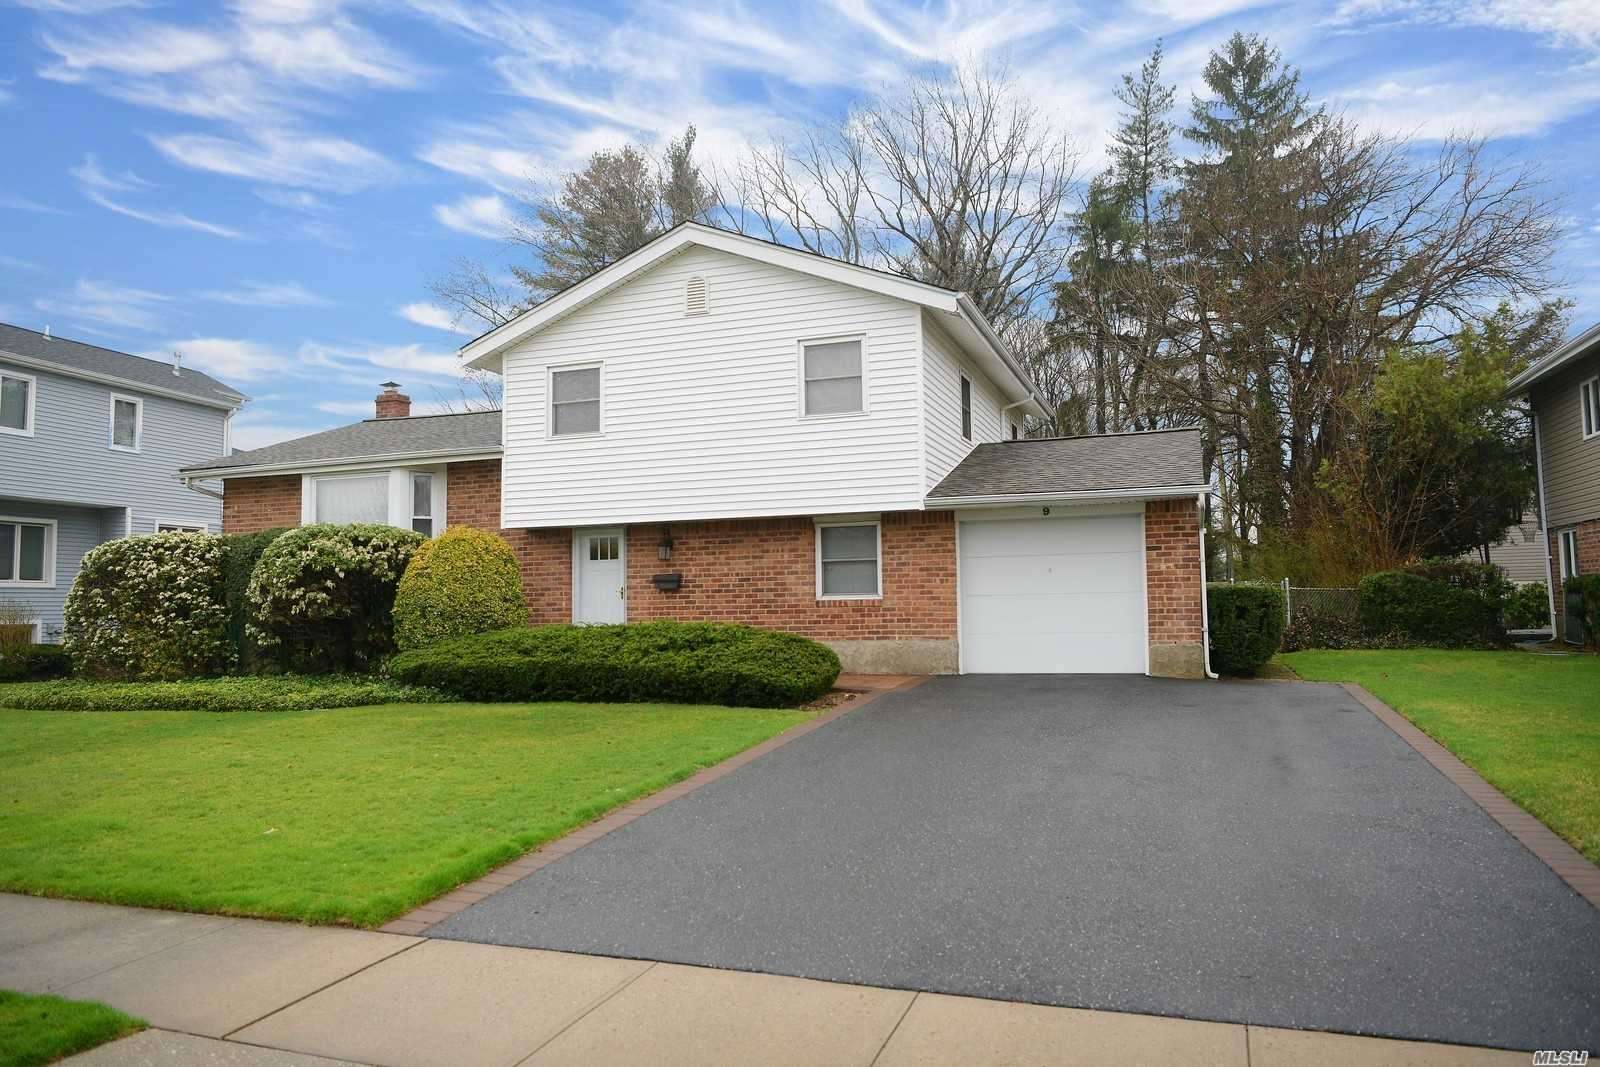 Move Right In! Everything in this house was redone in the past 5 years! Kitchen, baths, roof, driveway, boiler.. ask and it was done. Award winning Jericho School District- This is the house you've been waiting for! #jerichoschools